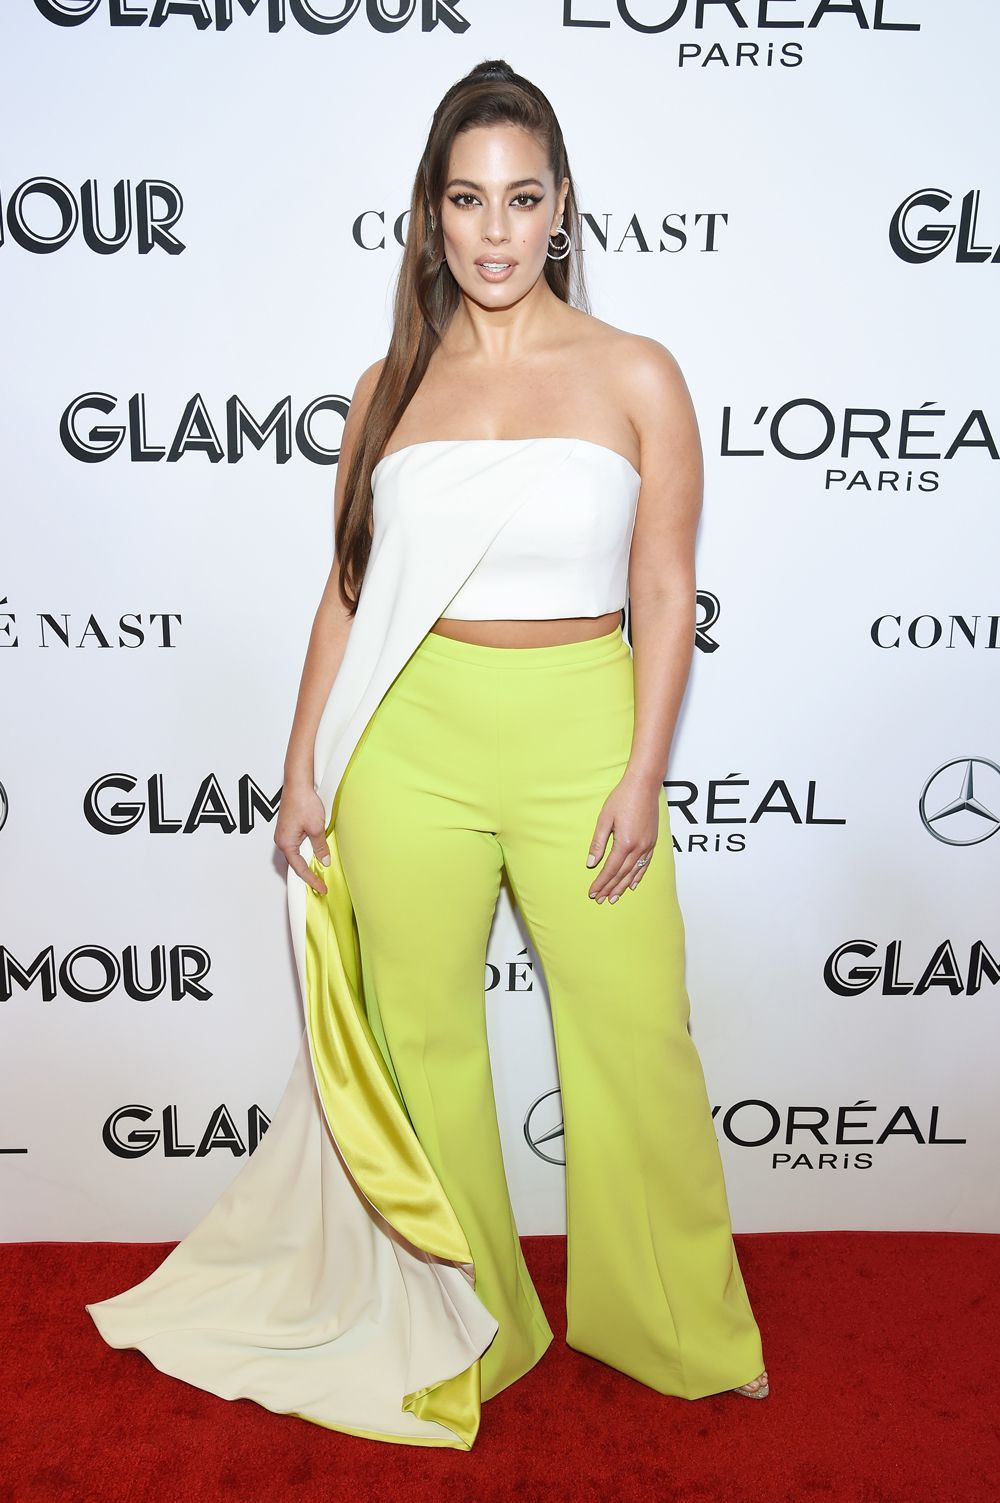 93c8417c738c Can we please appreciate Ashley Graham looking like an actual ...